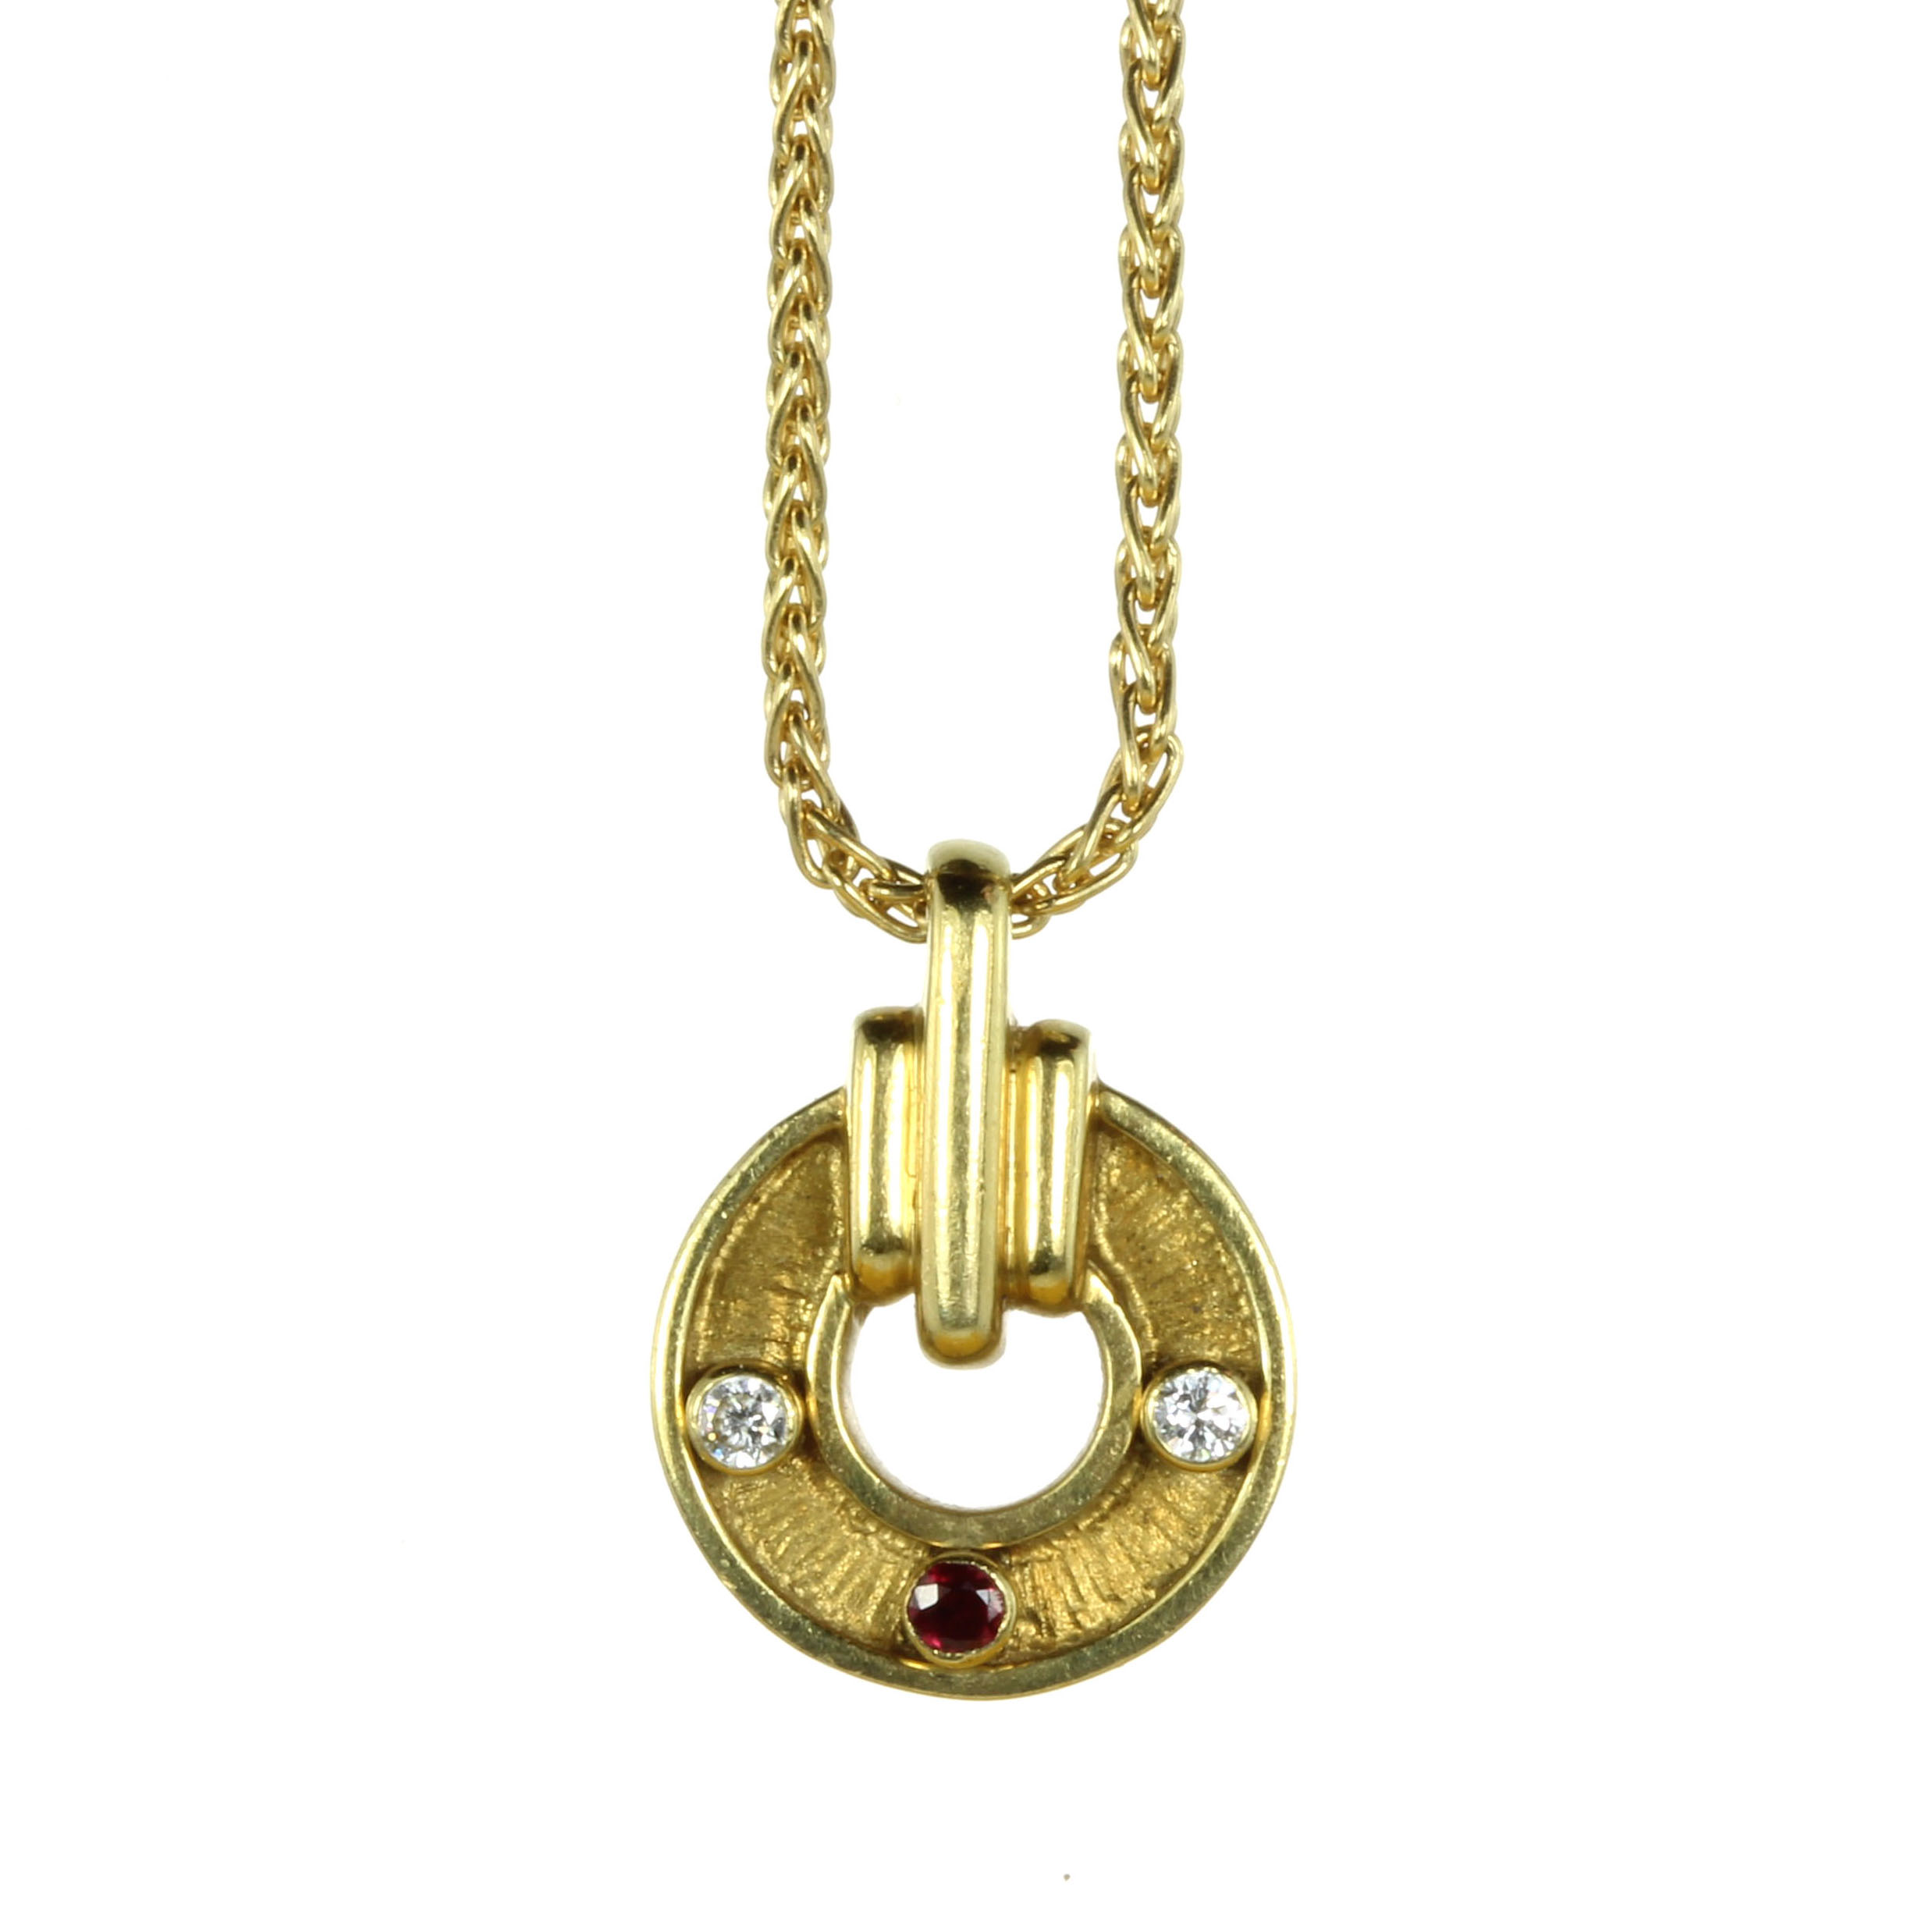 Los 62 - A VINTAGE RUBY AND DIAMOND PENDANT, KUTCHINSKY in 18ct yellow gold, the circular motif with textured